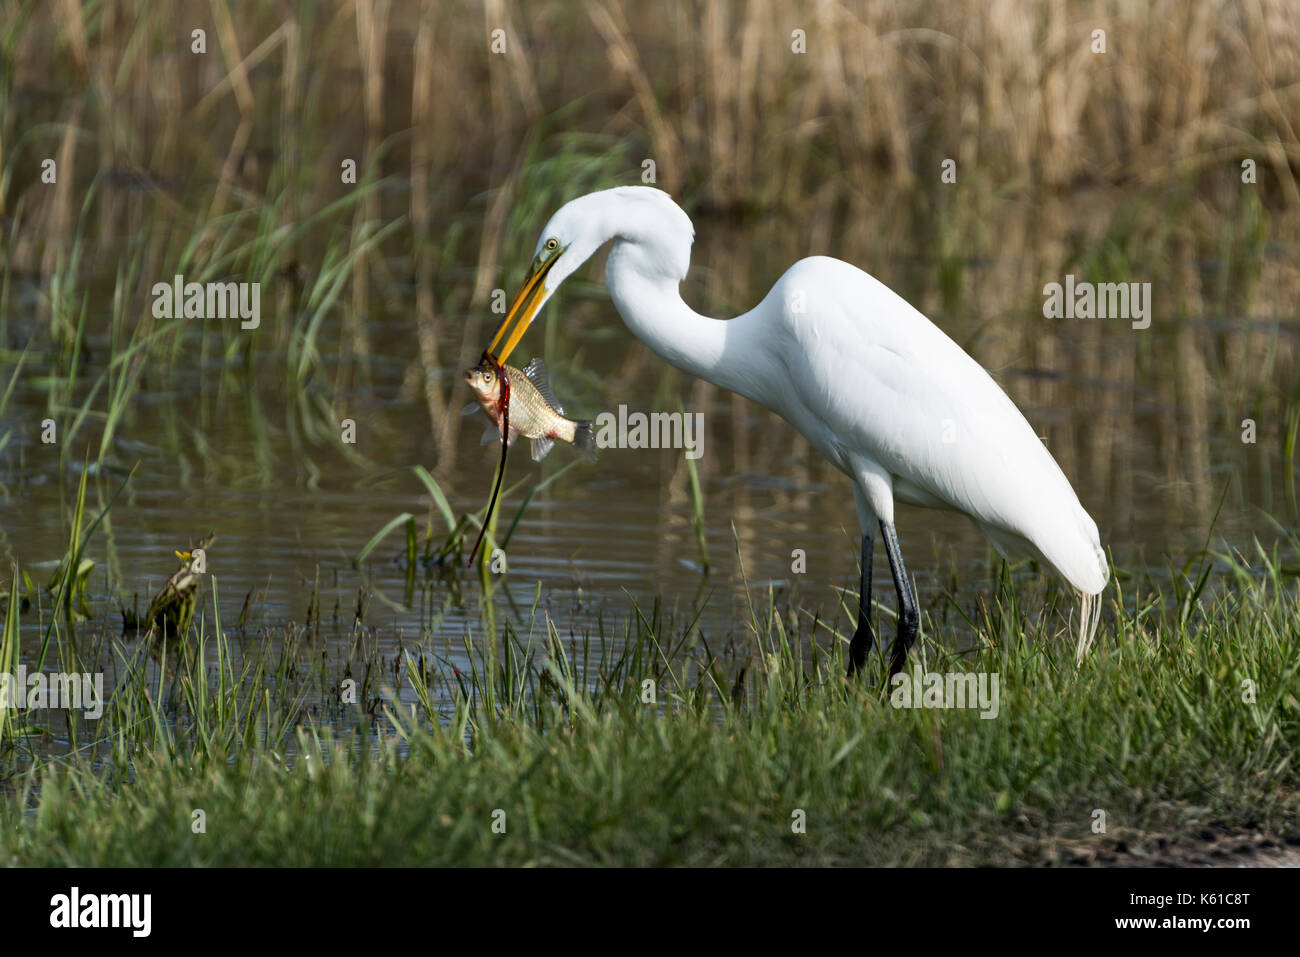 Great Egret eating a fish at the water's edge. - Stock Image